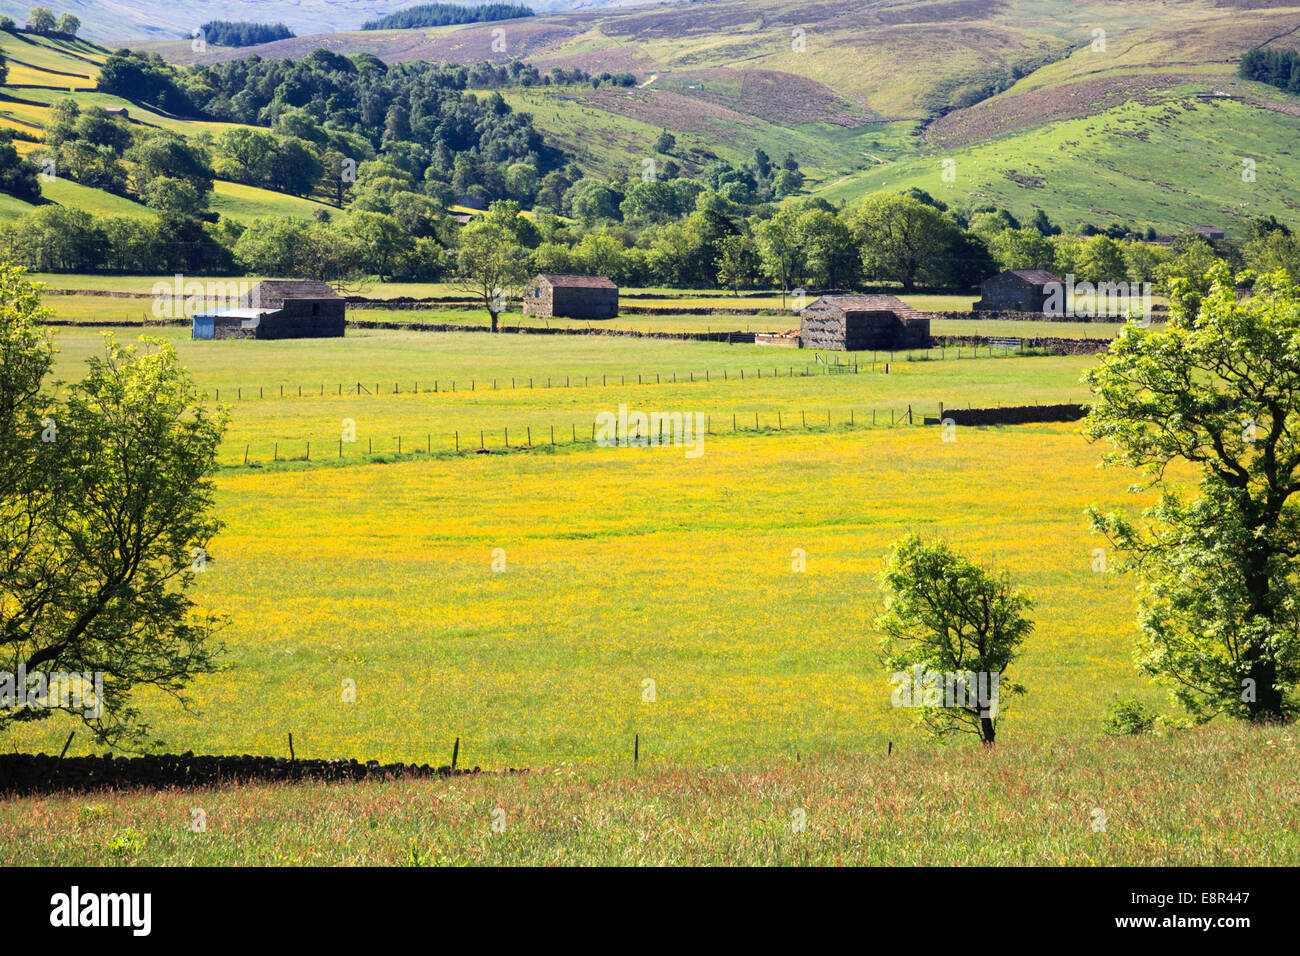 Raydale in the Yorkshire Dales National Park. - Stock Image